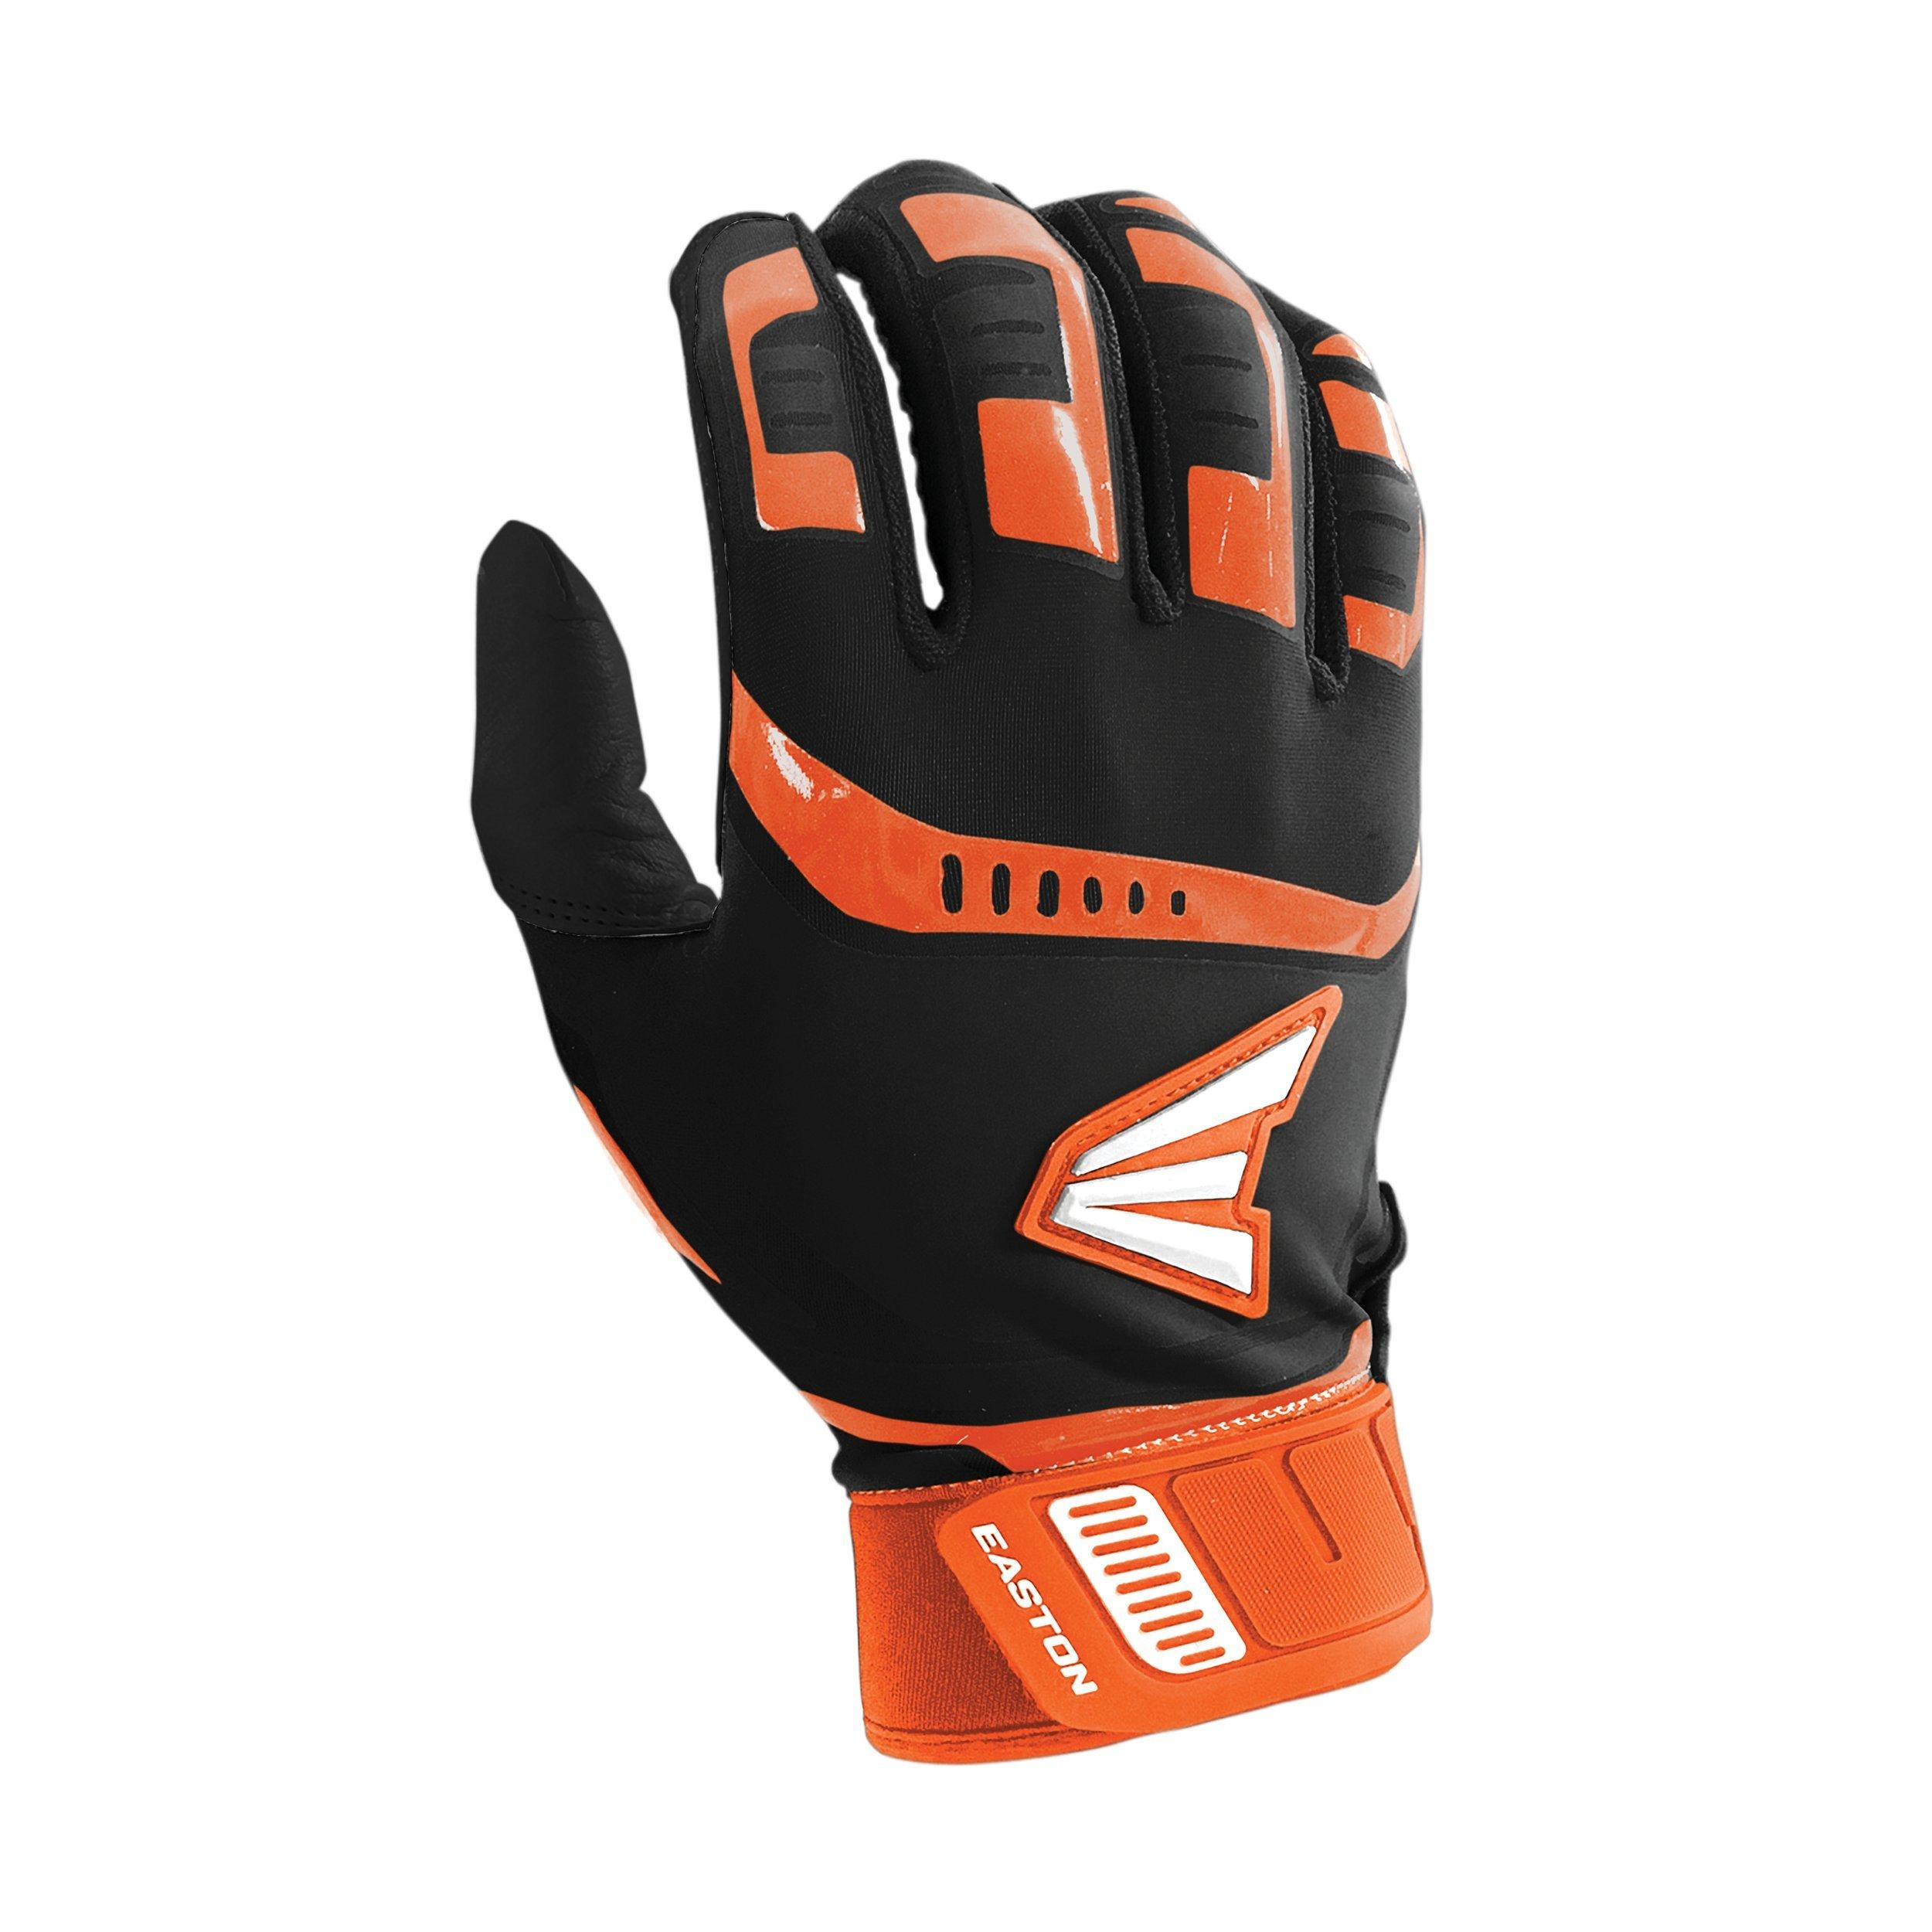 Walk- Batting Gloves Easton